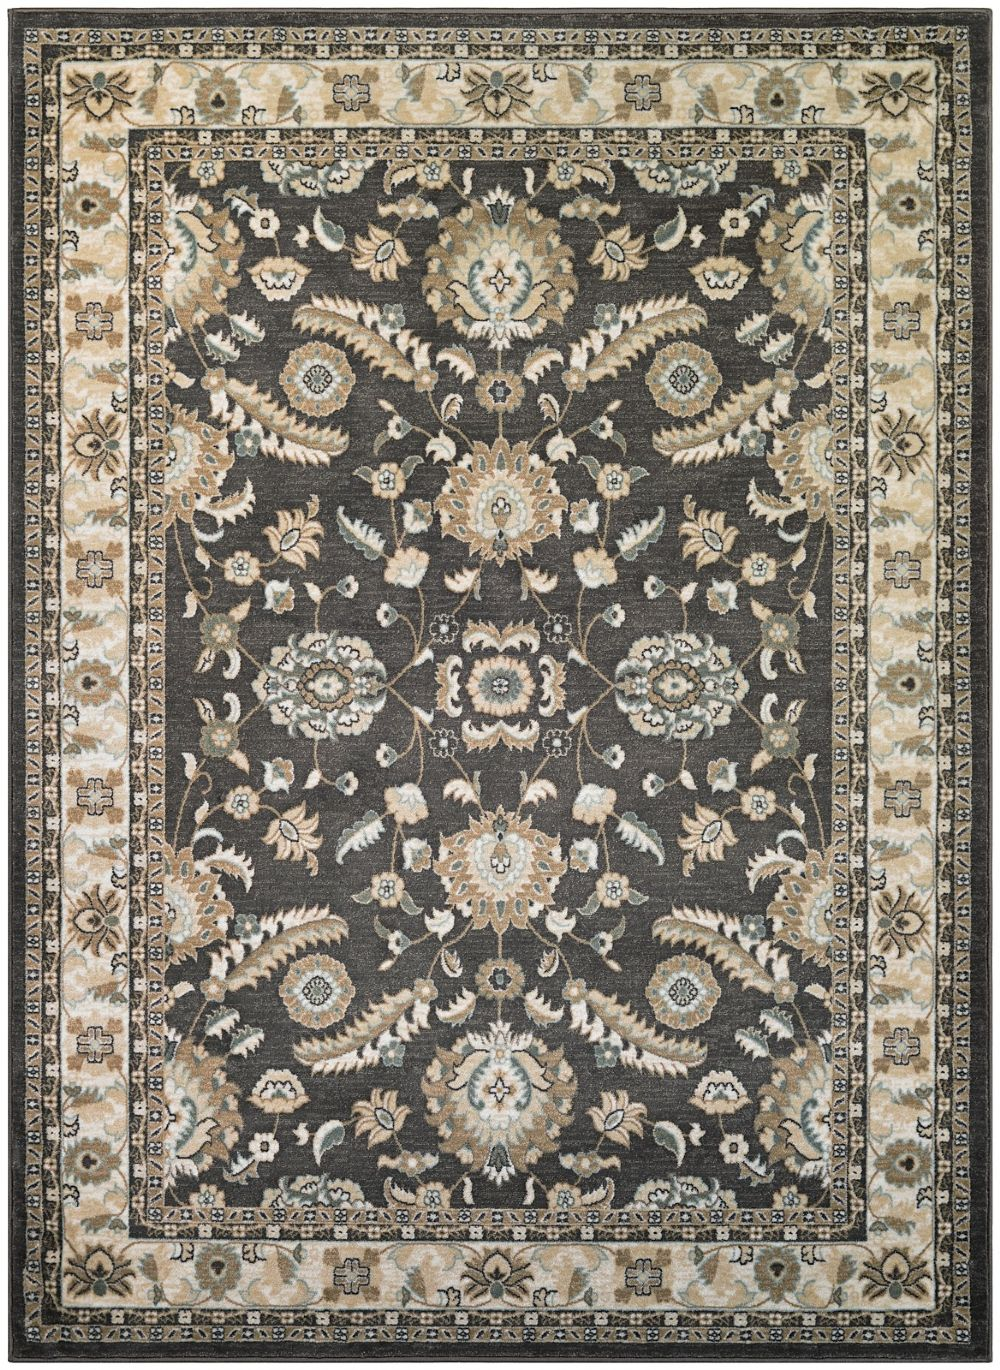 couristan konya traditional area rug collection